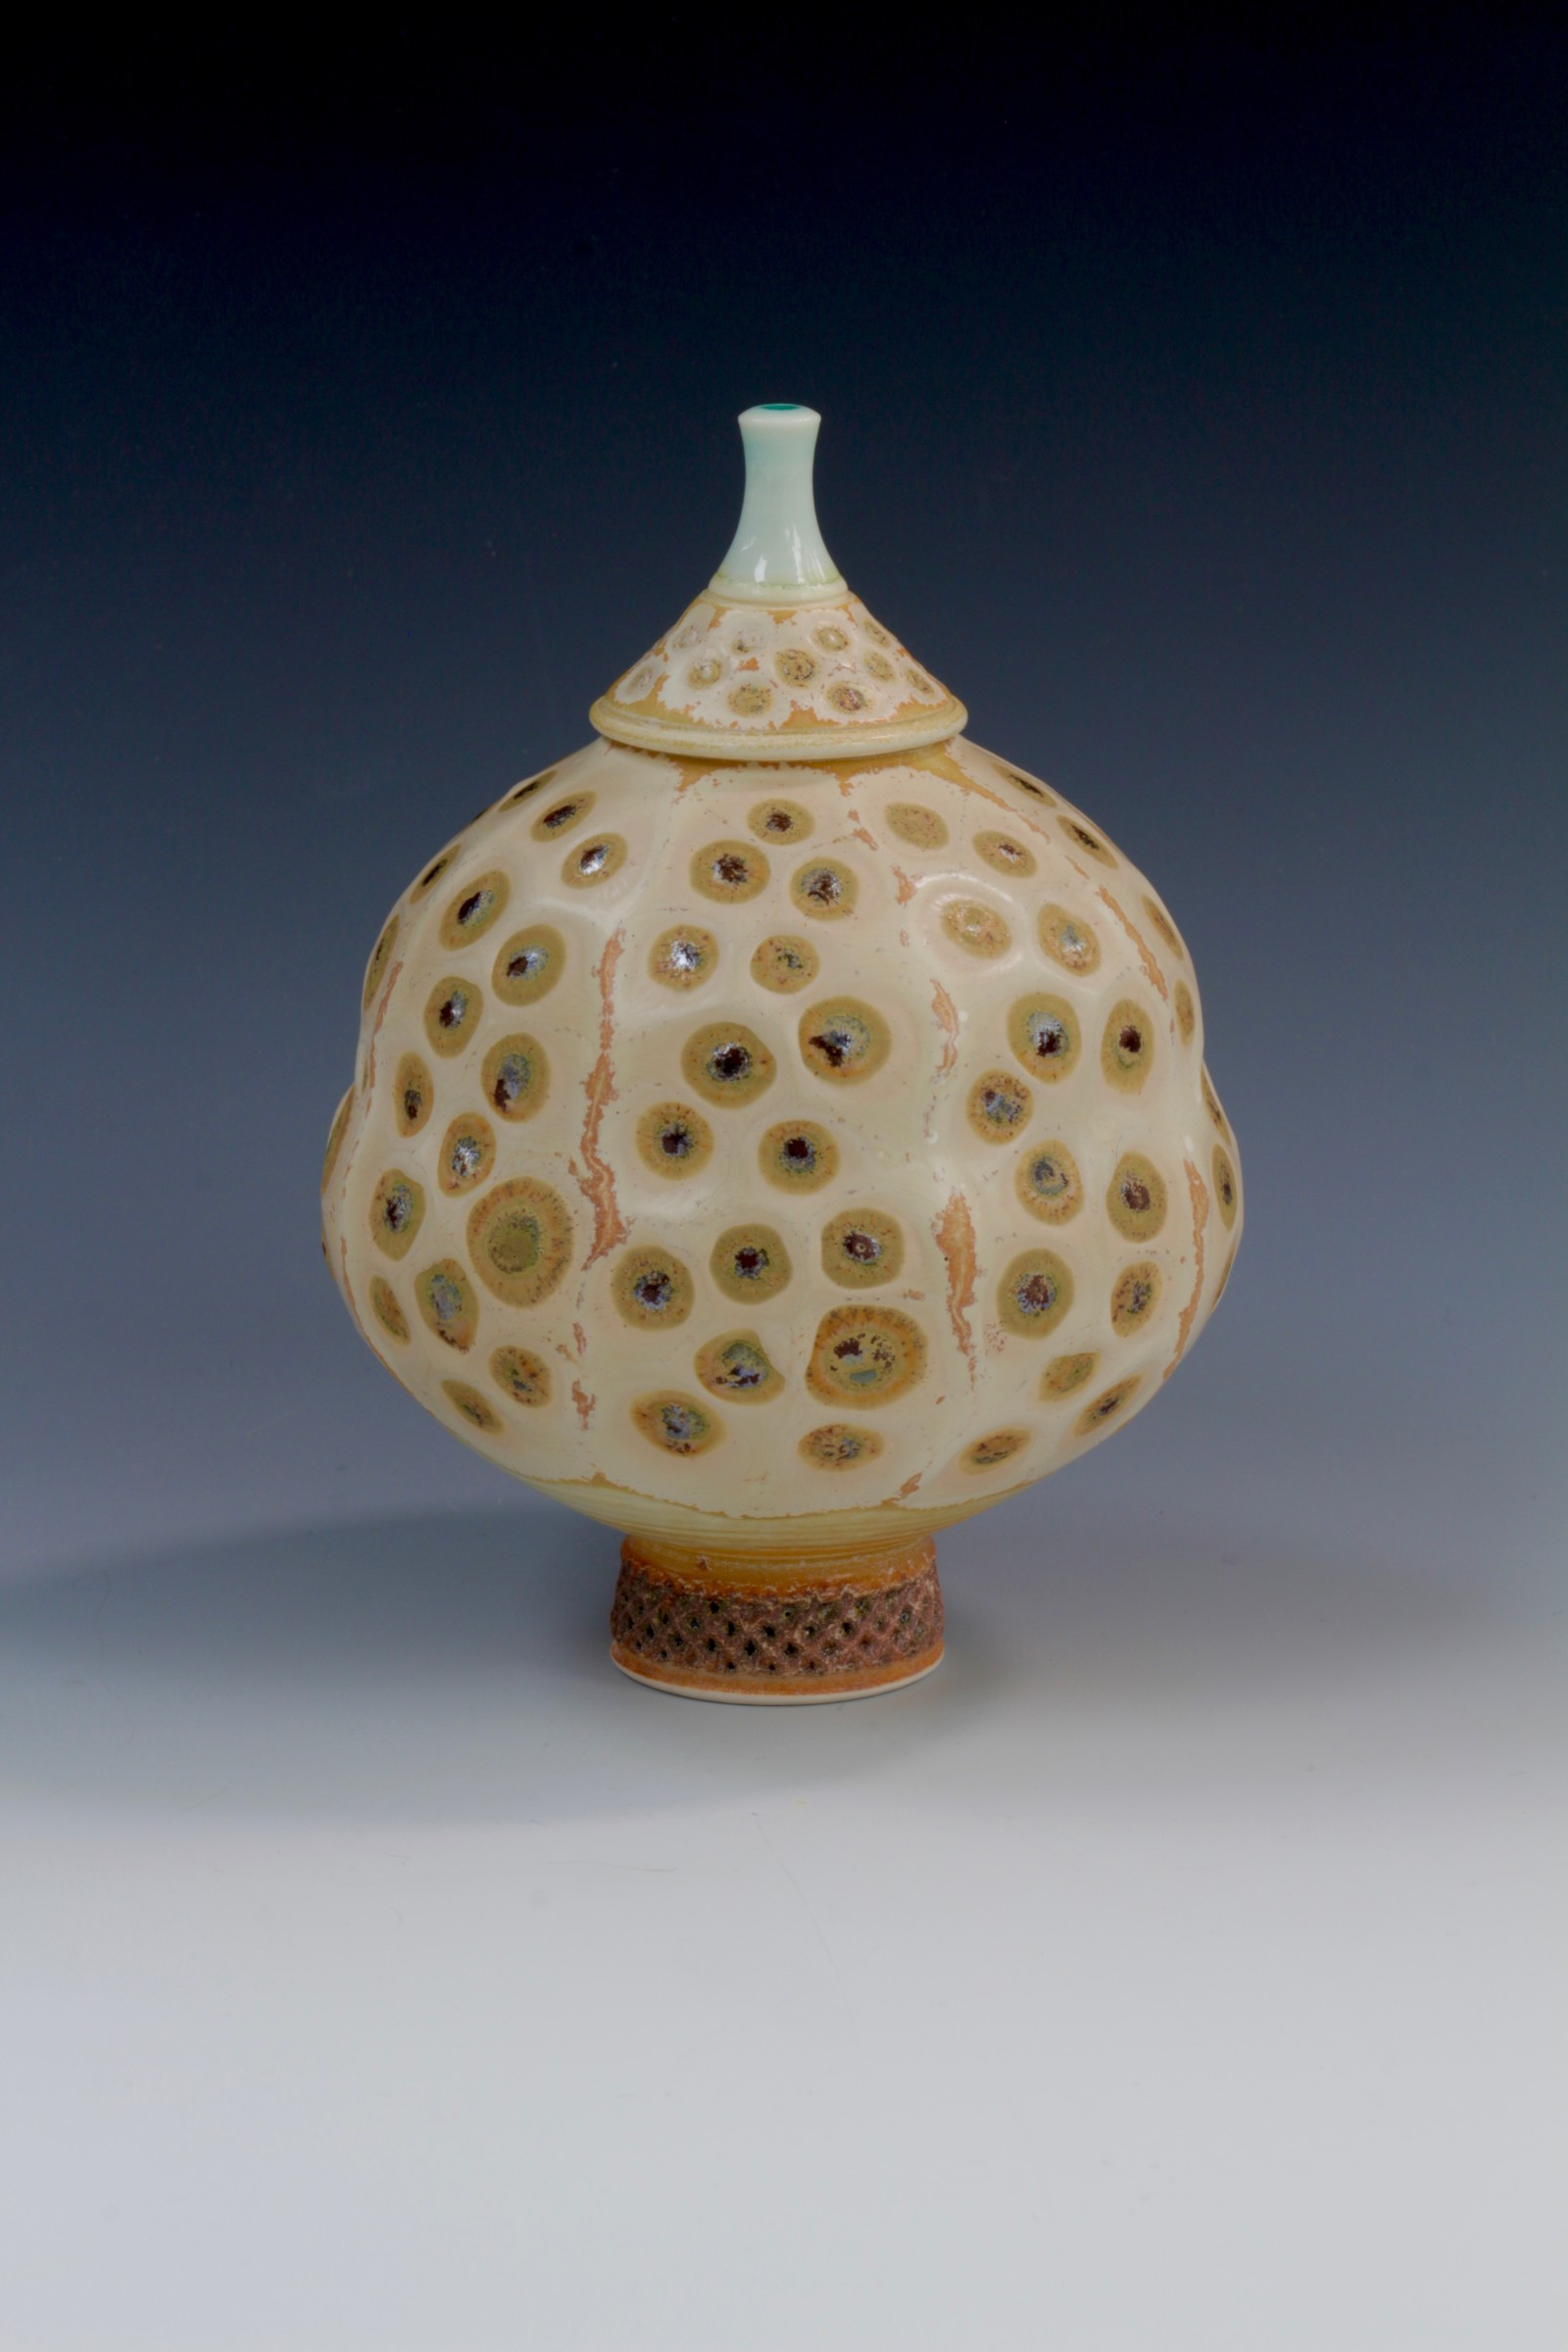 "<span class=""link fancybox-details-link""><a href=""/artists/61-geoffrey-swindell/works/6907-geoffrey-swindell-lidded-pot-2020/"">View Detail Page</a></span><div class=""artist""><strong>Geoffrey Swindell</strong></div> <div class=""title""><em>Lidded Pot</em>, 2020</div> <div class=""signed_and_dated"">impressed artist's seal to base</div> <div class=""medium"">porcelain</div><div class=""copyright_line"">Own Art: £ 21 x 10 Months, 0% APR</div>"